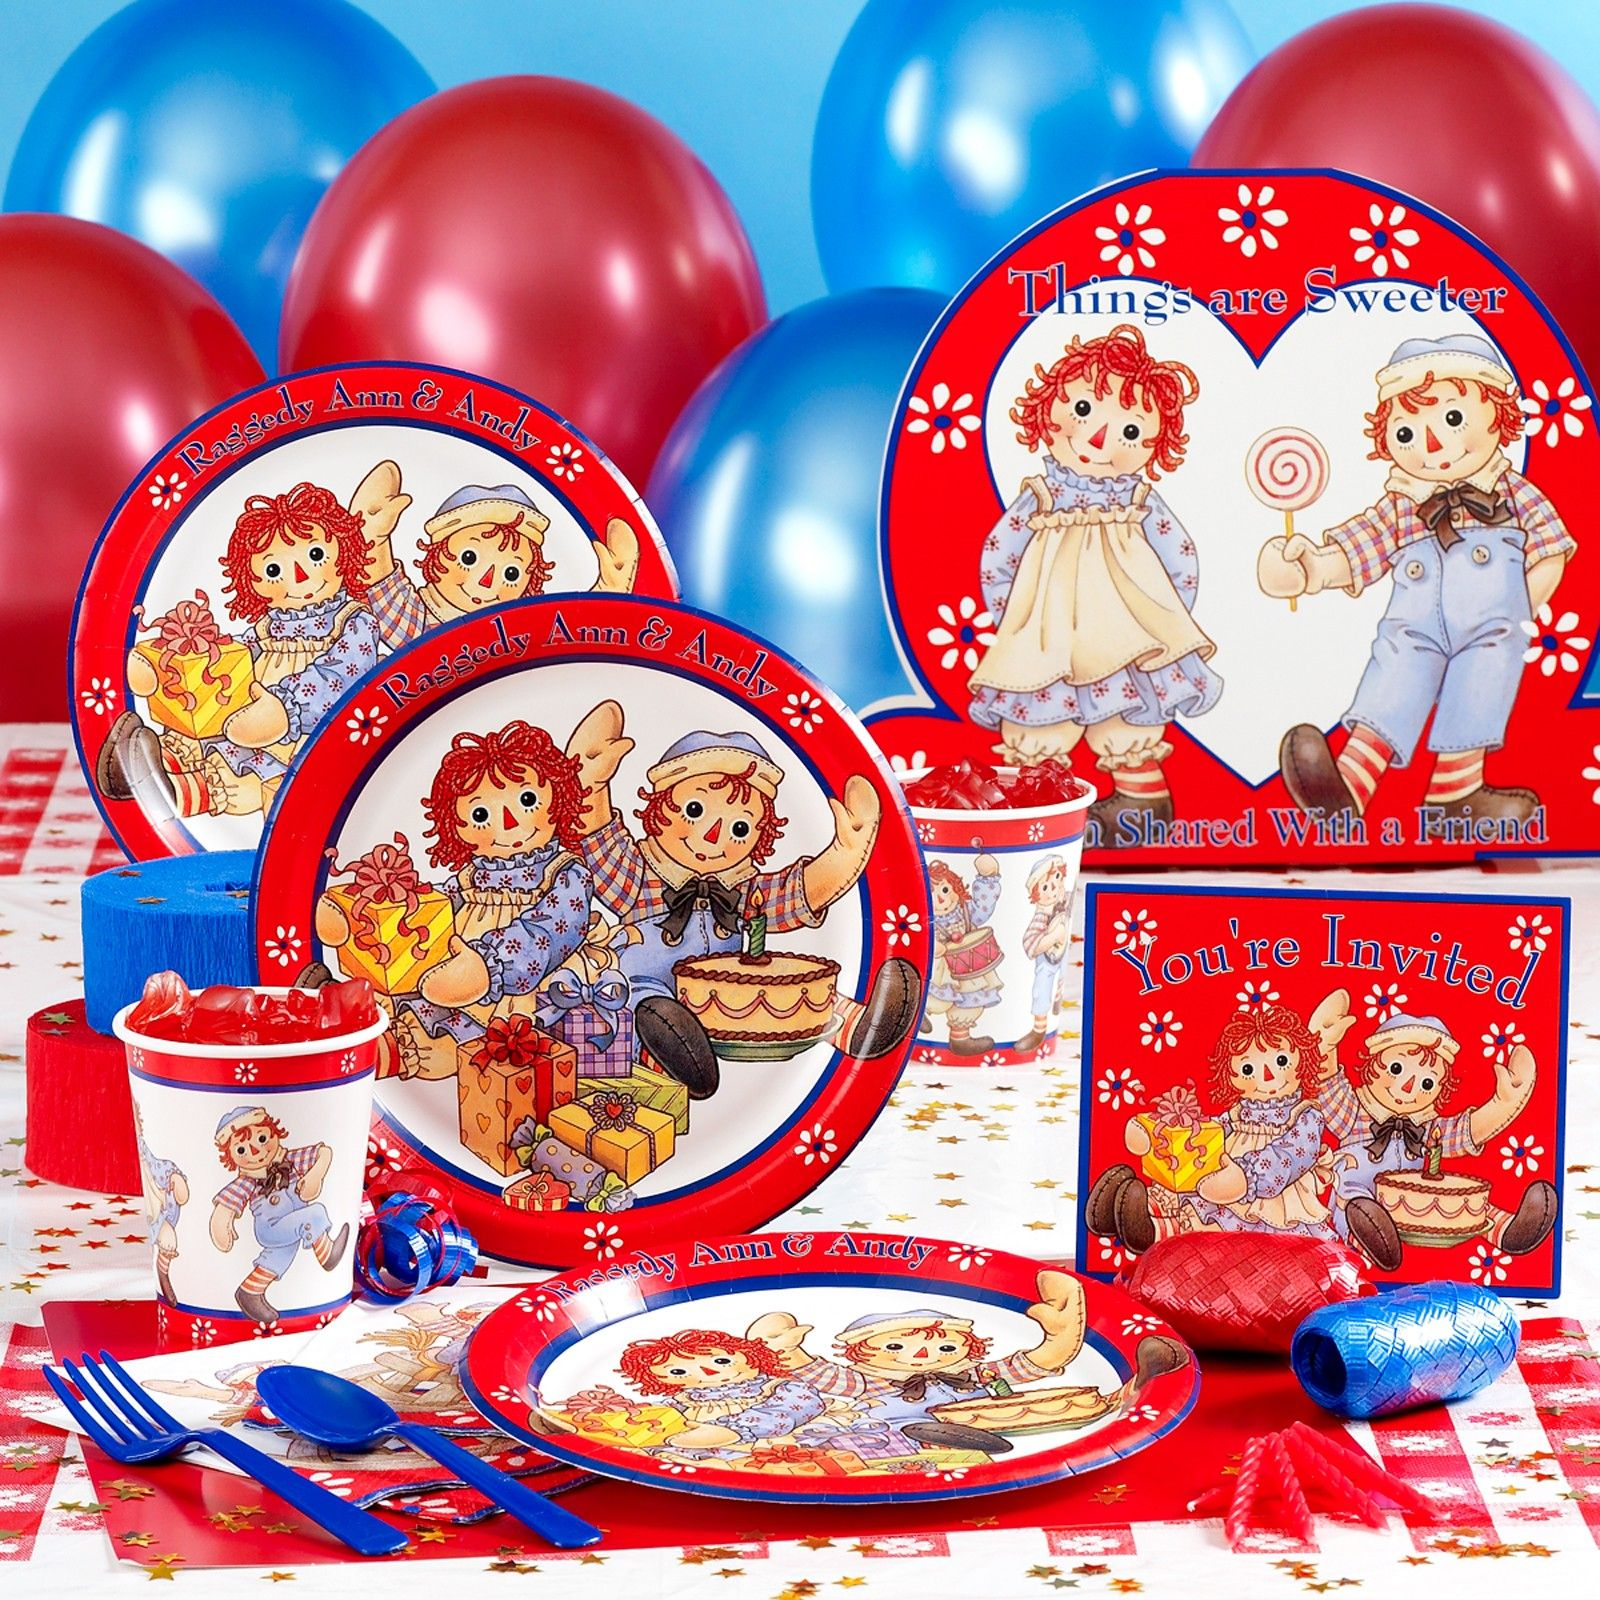 Raggedy Ann Party suppliesUsed these for my daughters first